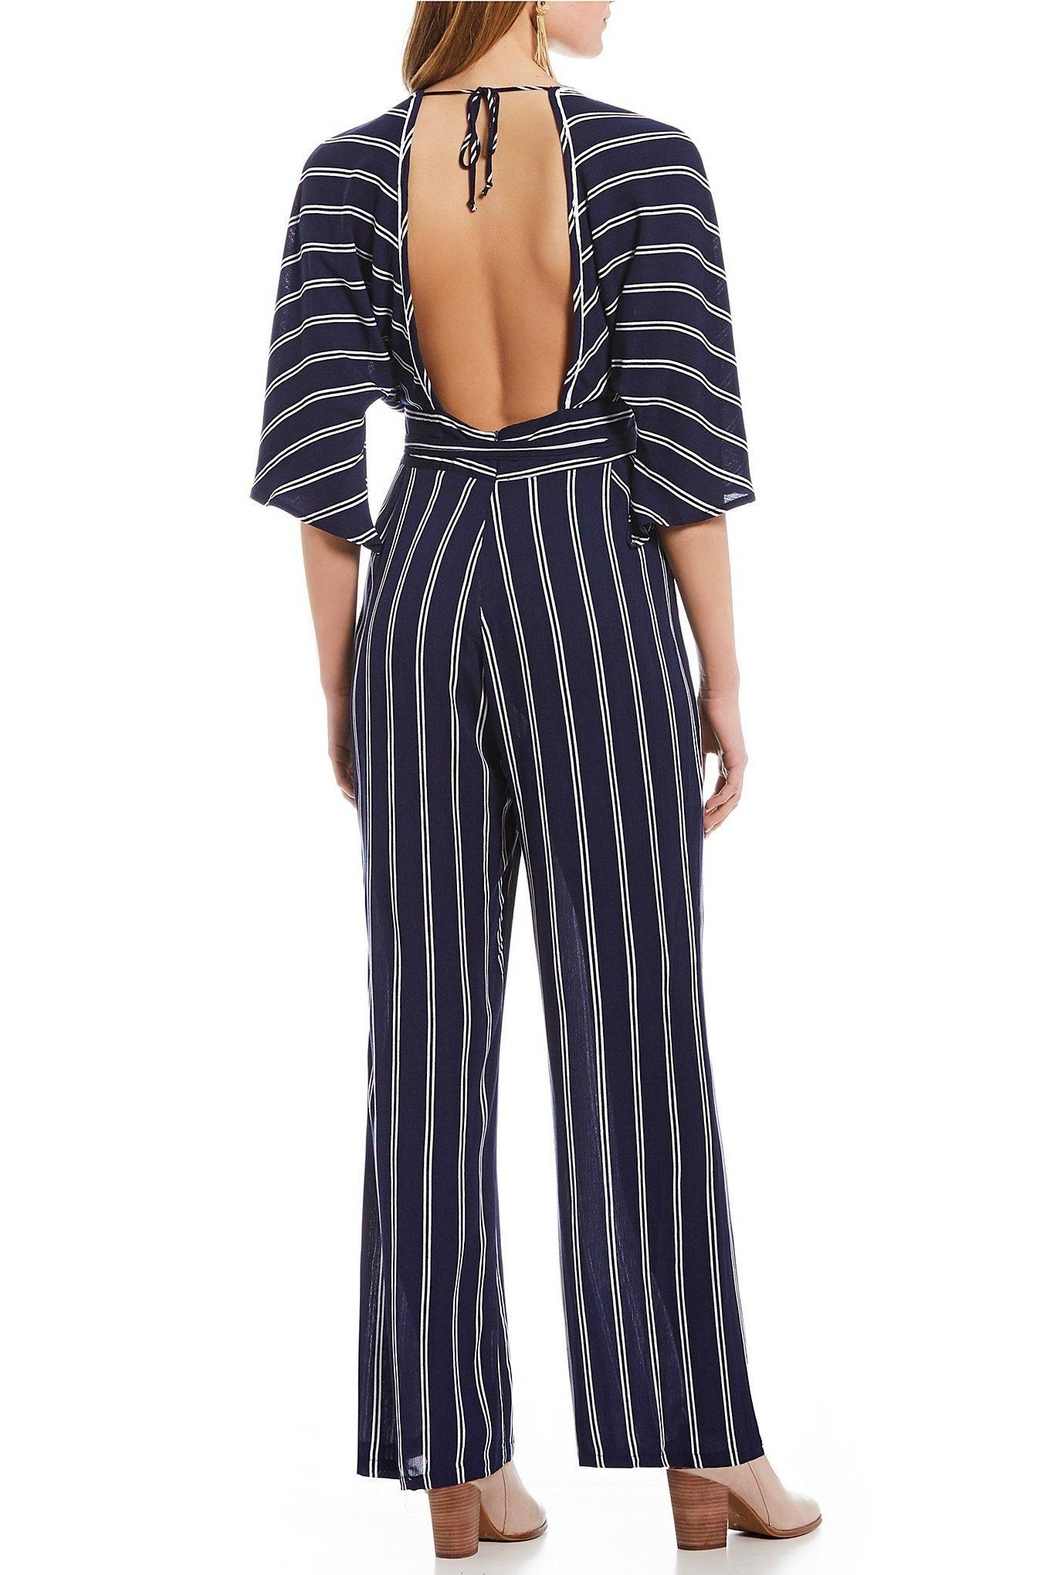 Lucy Love Marina Jumpsuit - Front Full Image